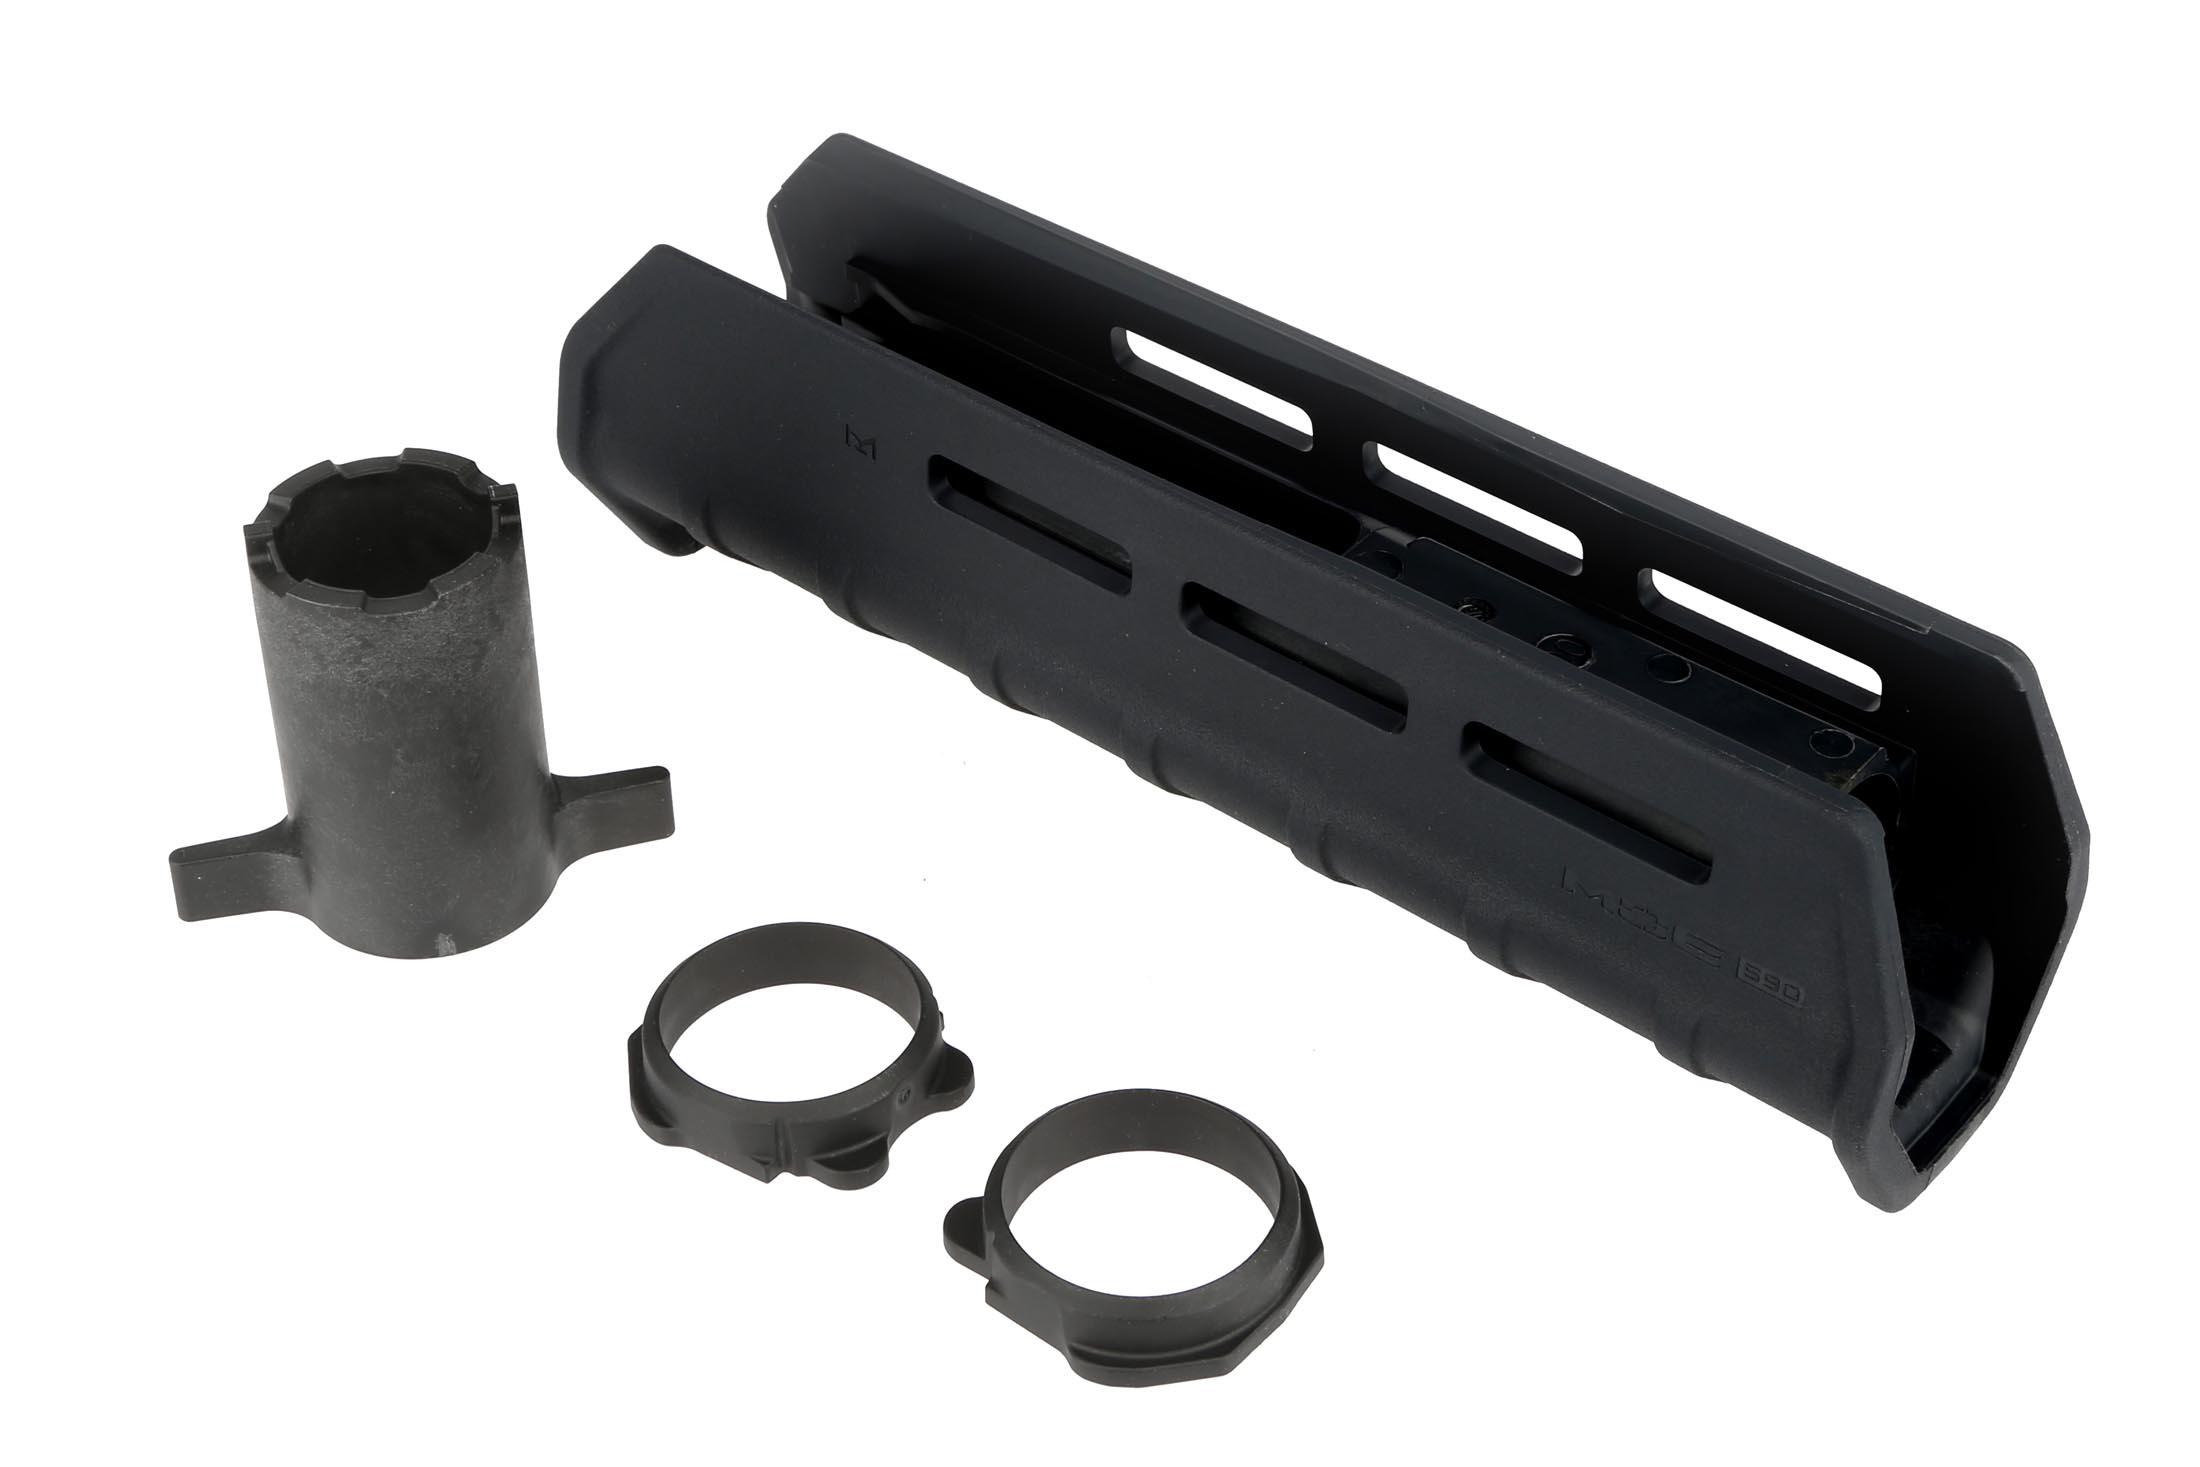 The Mossberg 590a1 magpul forend is a drop in replacement for stock handguards